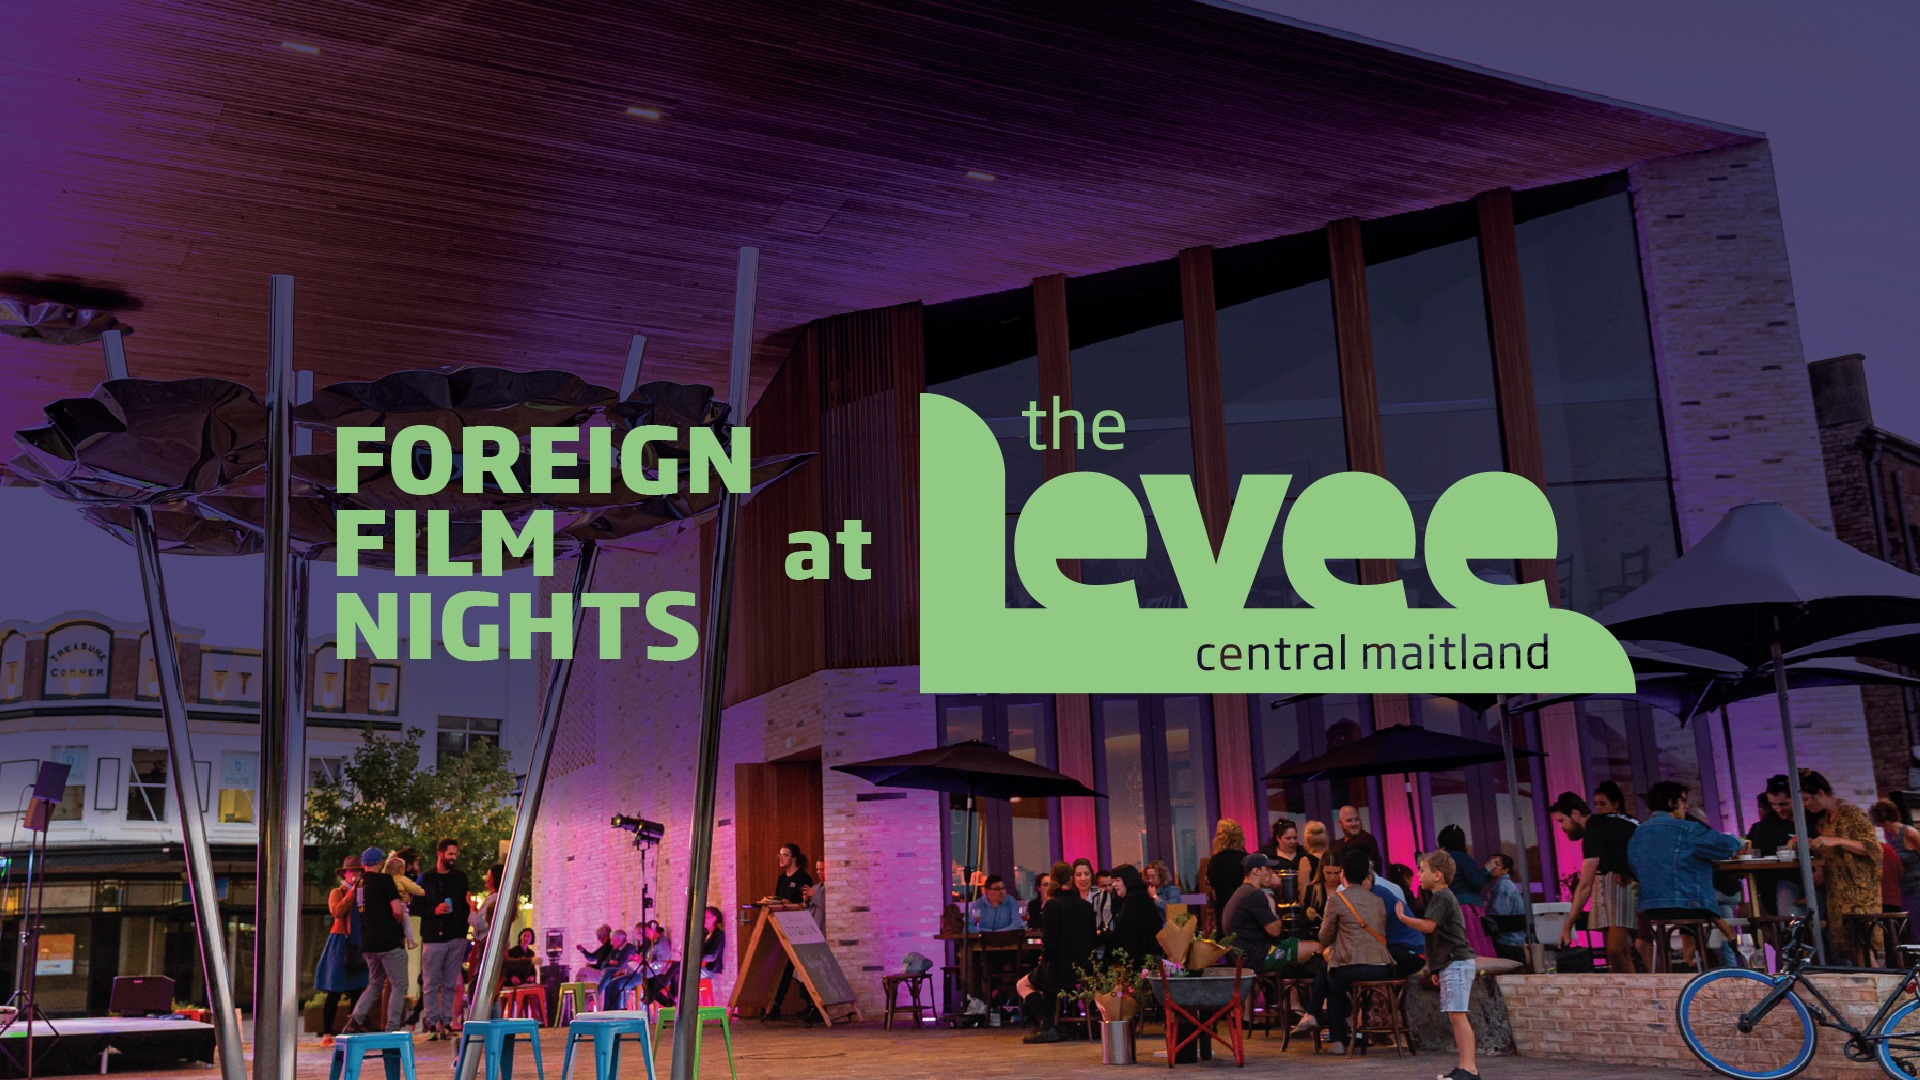 PARASITE: Foreign Film Nights at The Levee Central Maitland